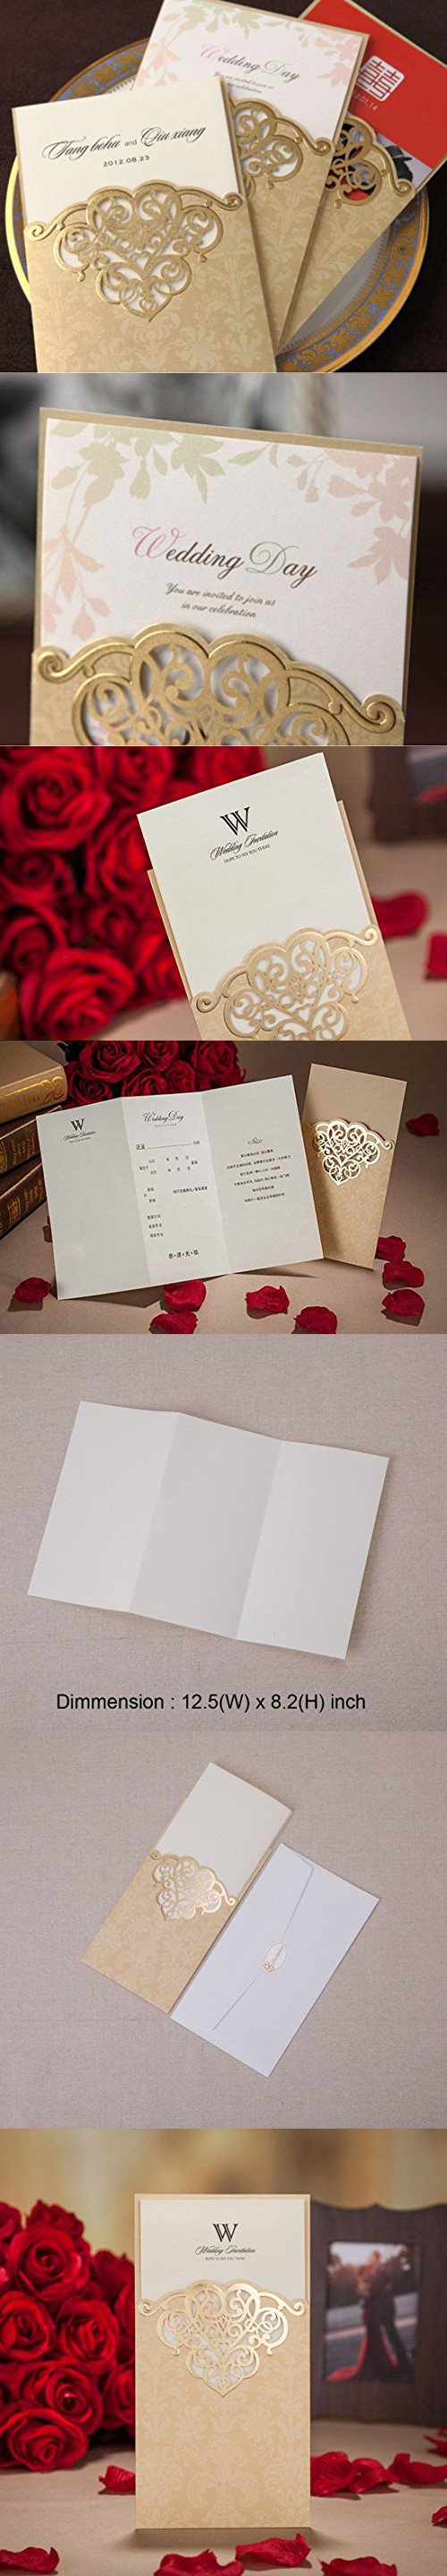 bridal shower invitation pictures%0A Wishmade Laser Cut Vintage Elegant Pocket Wedding Invitations Cards Gold     Pieces Set for Marriage Birthday Bridal Shower Heart with Envelopes Seals  Party